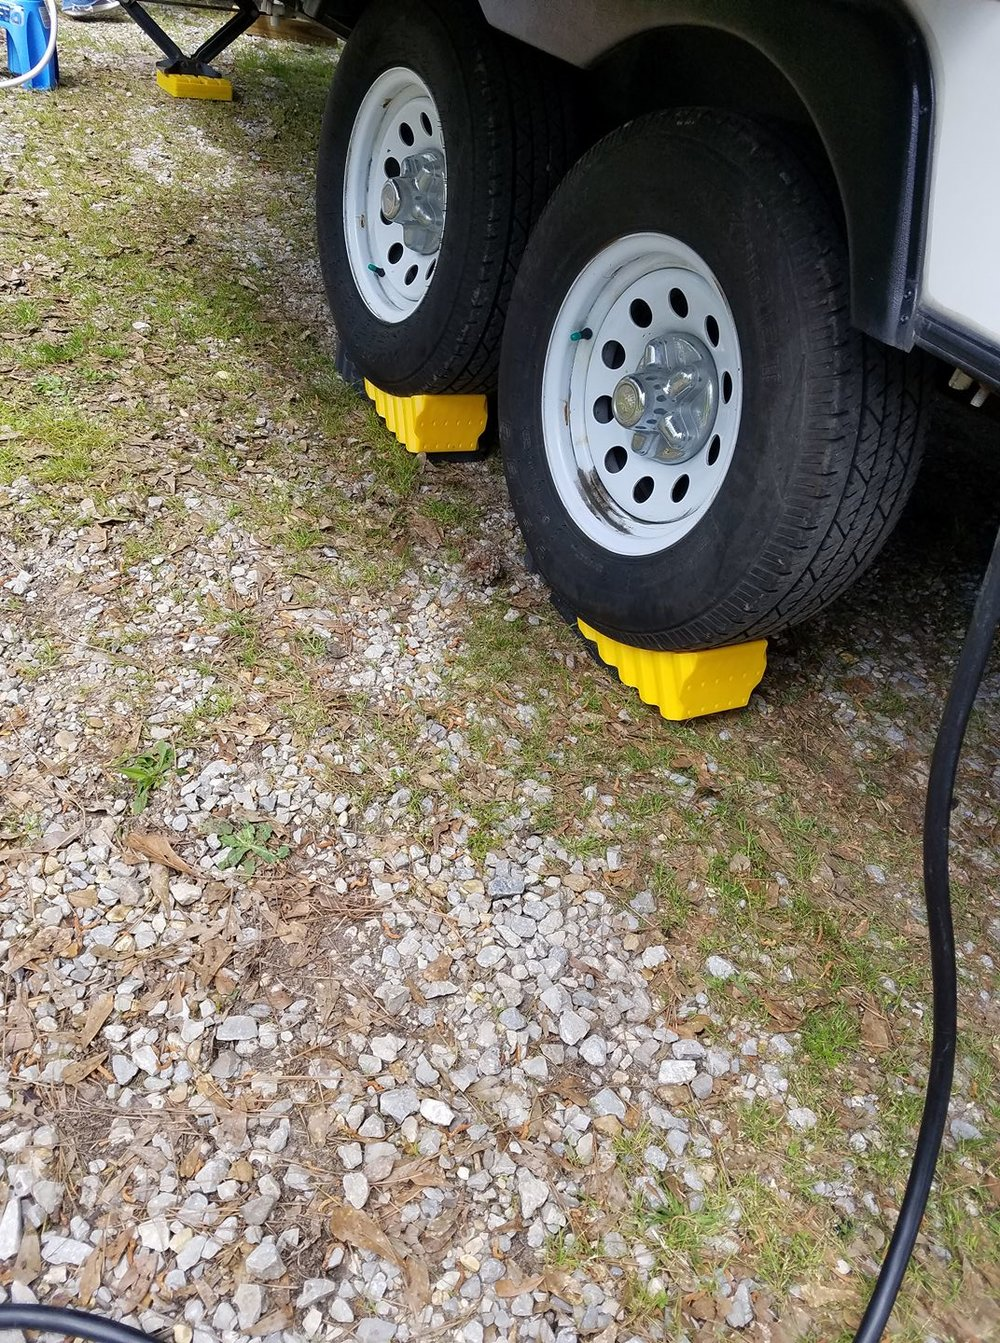 Camco Levelers - Camco's shorter version of the leveler